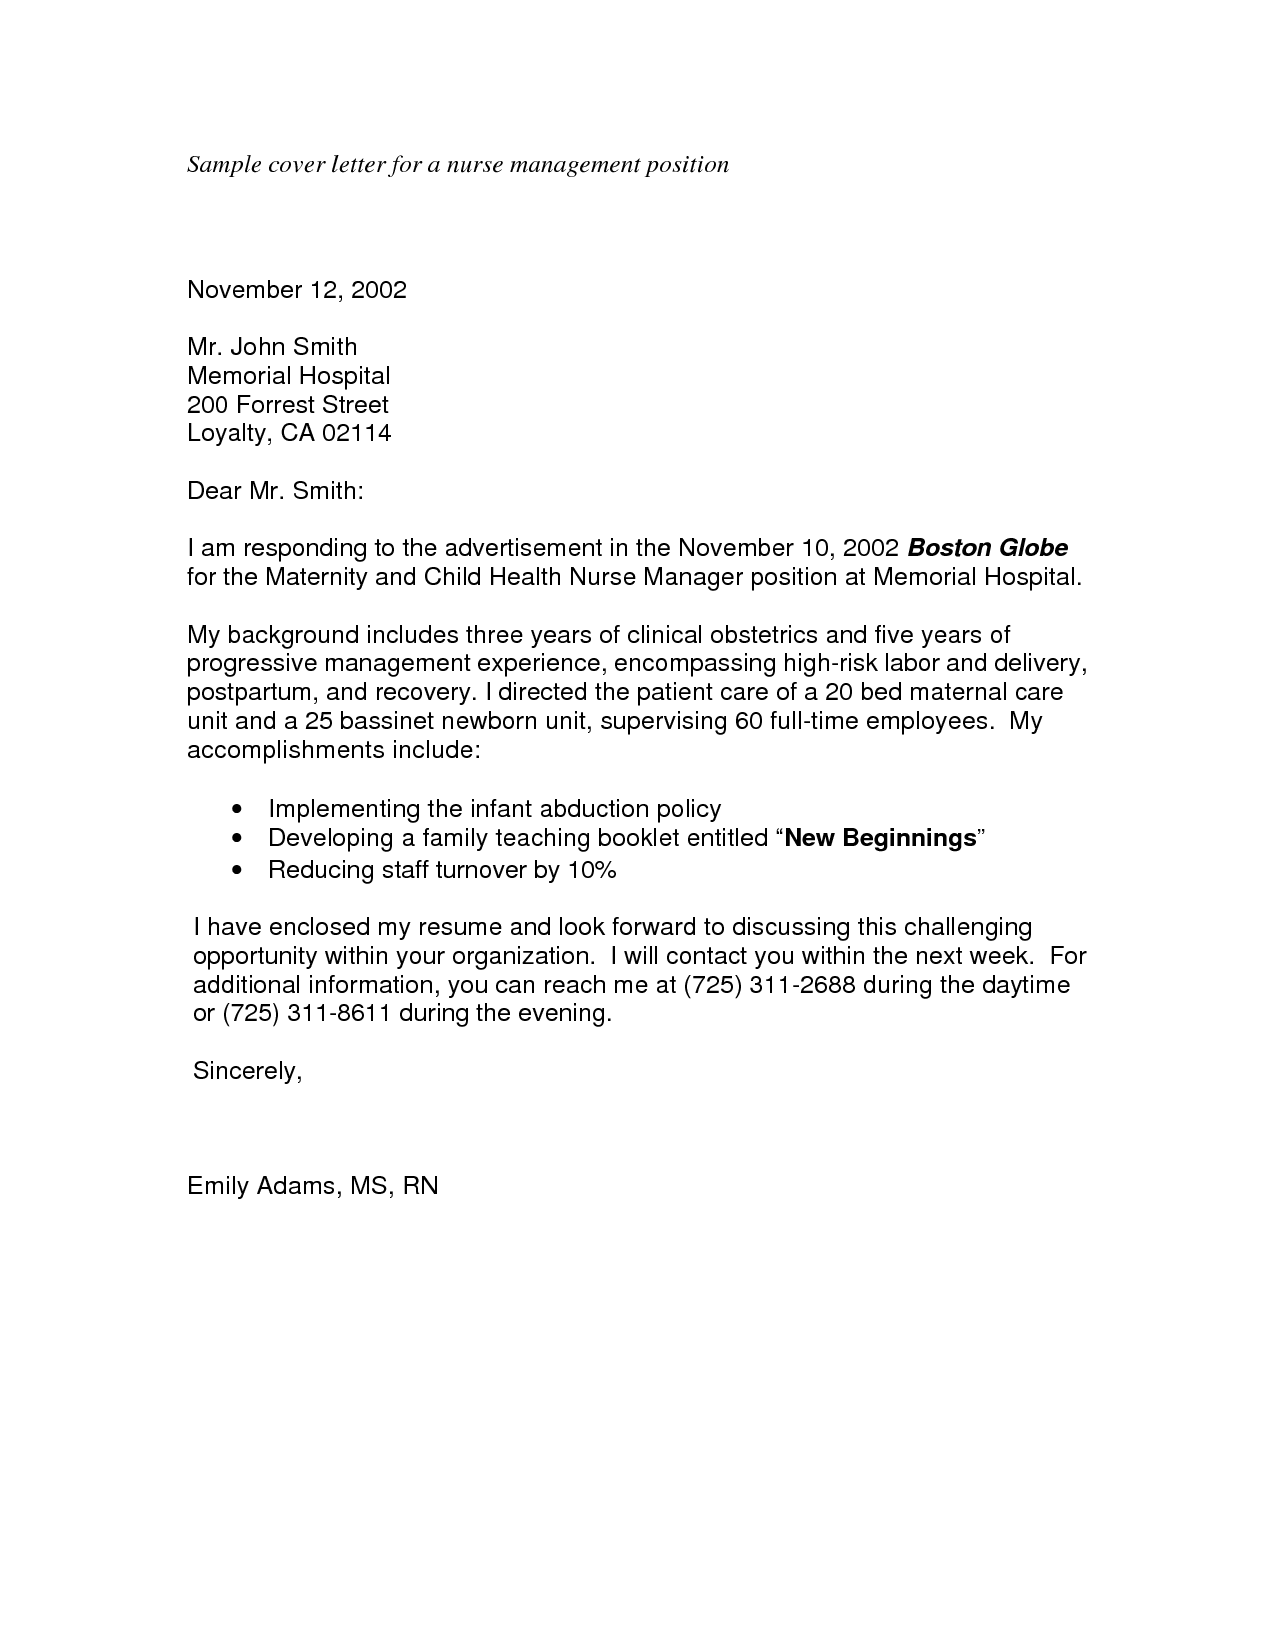 Wonderful Sample Nursing Application Cover Letters | Sample Cover Letter For A Nurse Management  Position   PDF